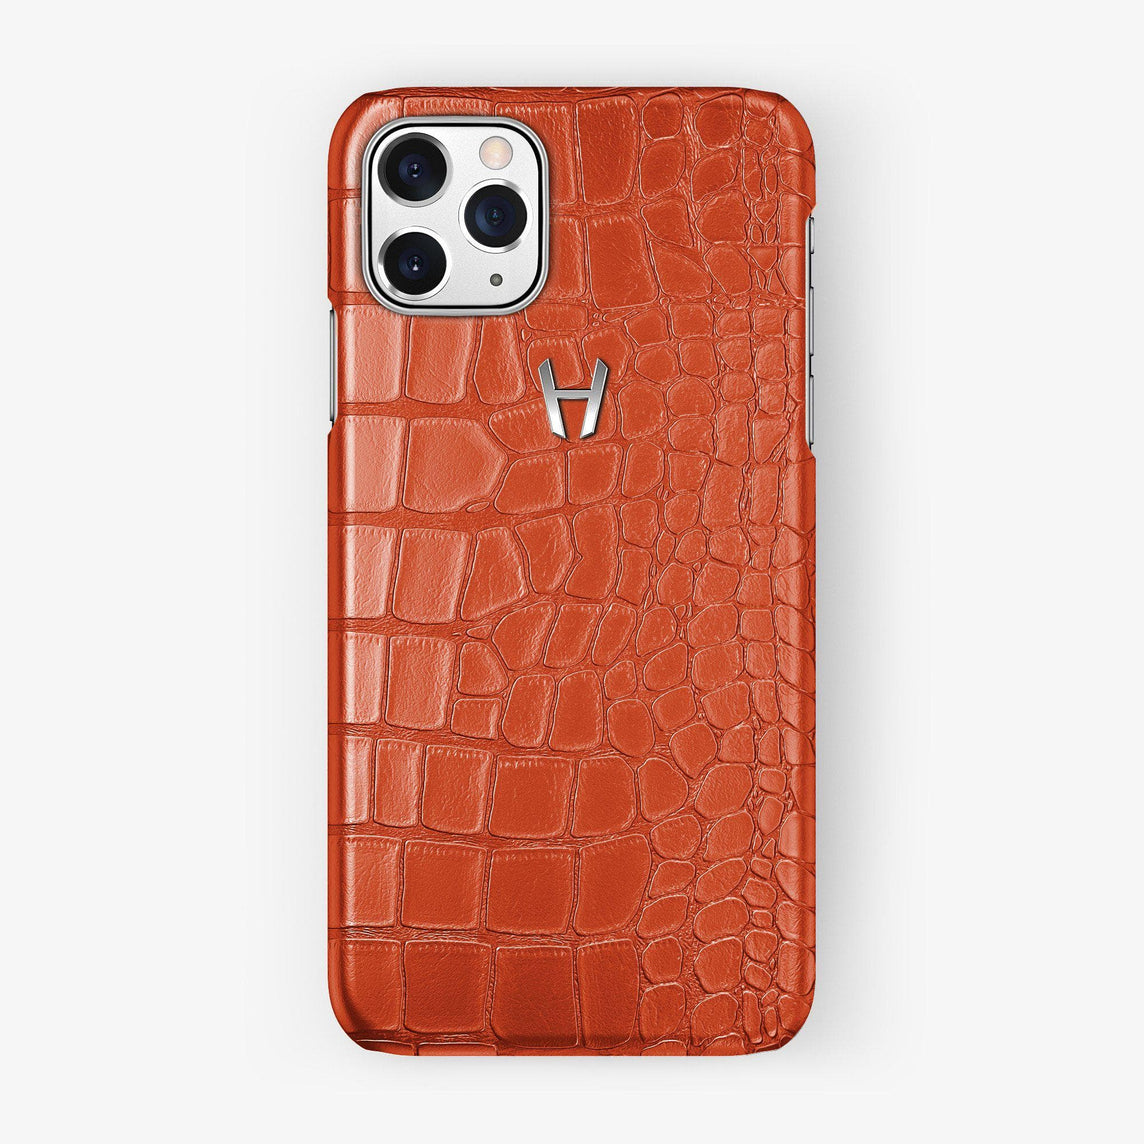 Alligator Case iPhone 11 Pro | Orange Sunset - Stainless Steel